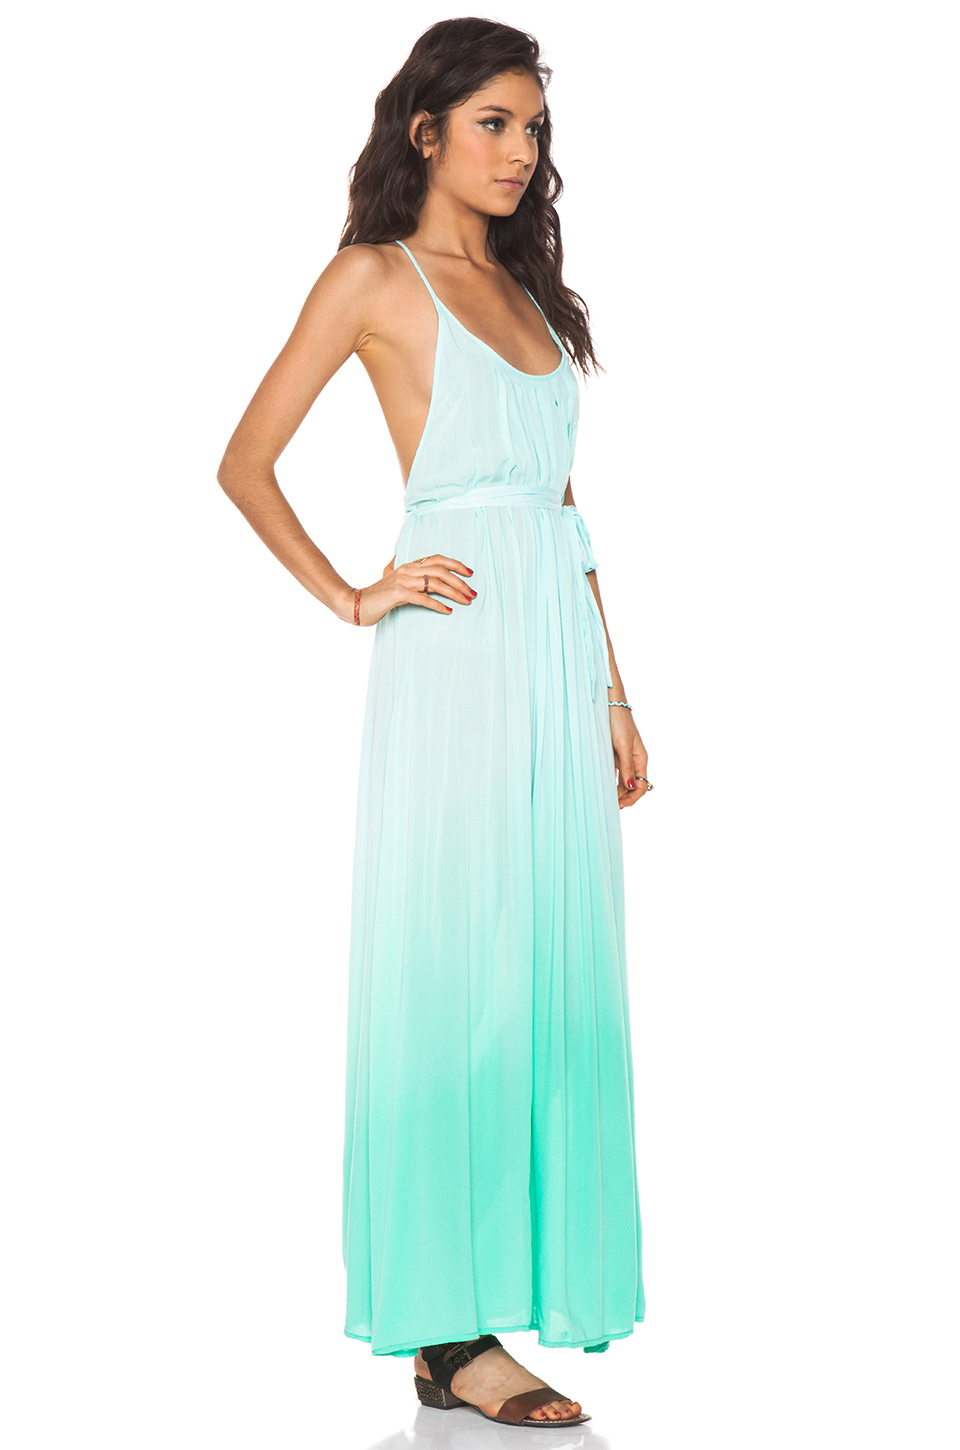 WOODLEIGH Veve Maxi Dress in Seafoam